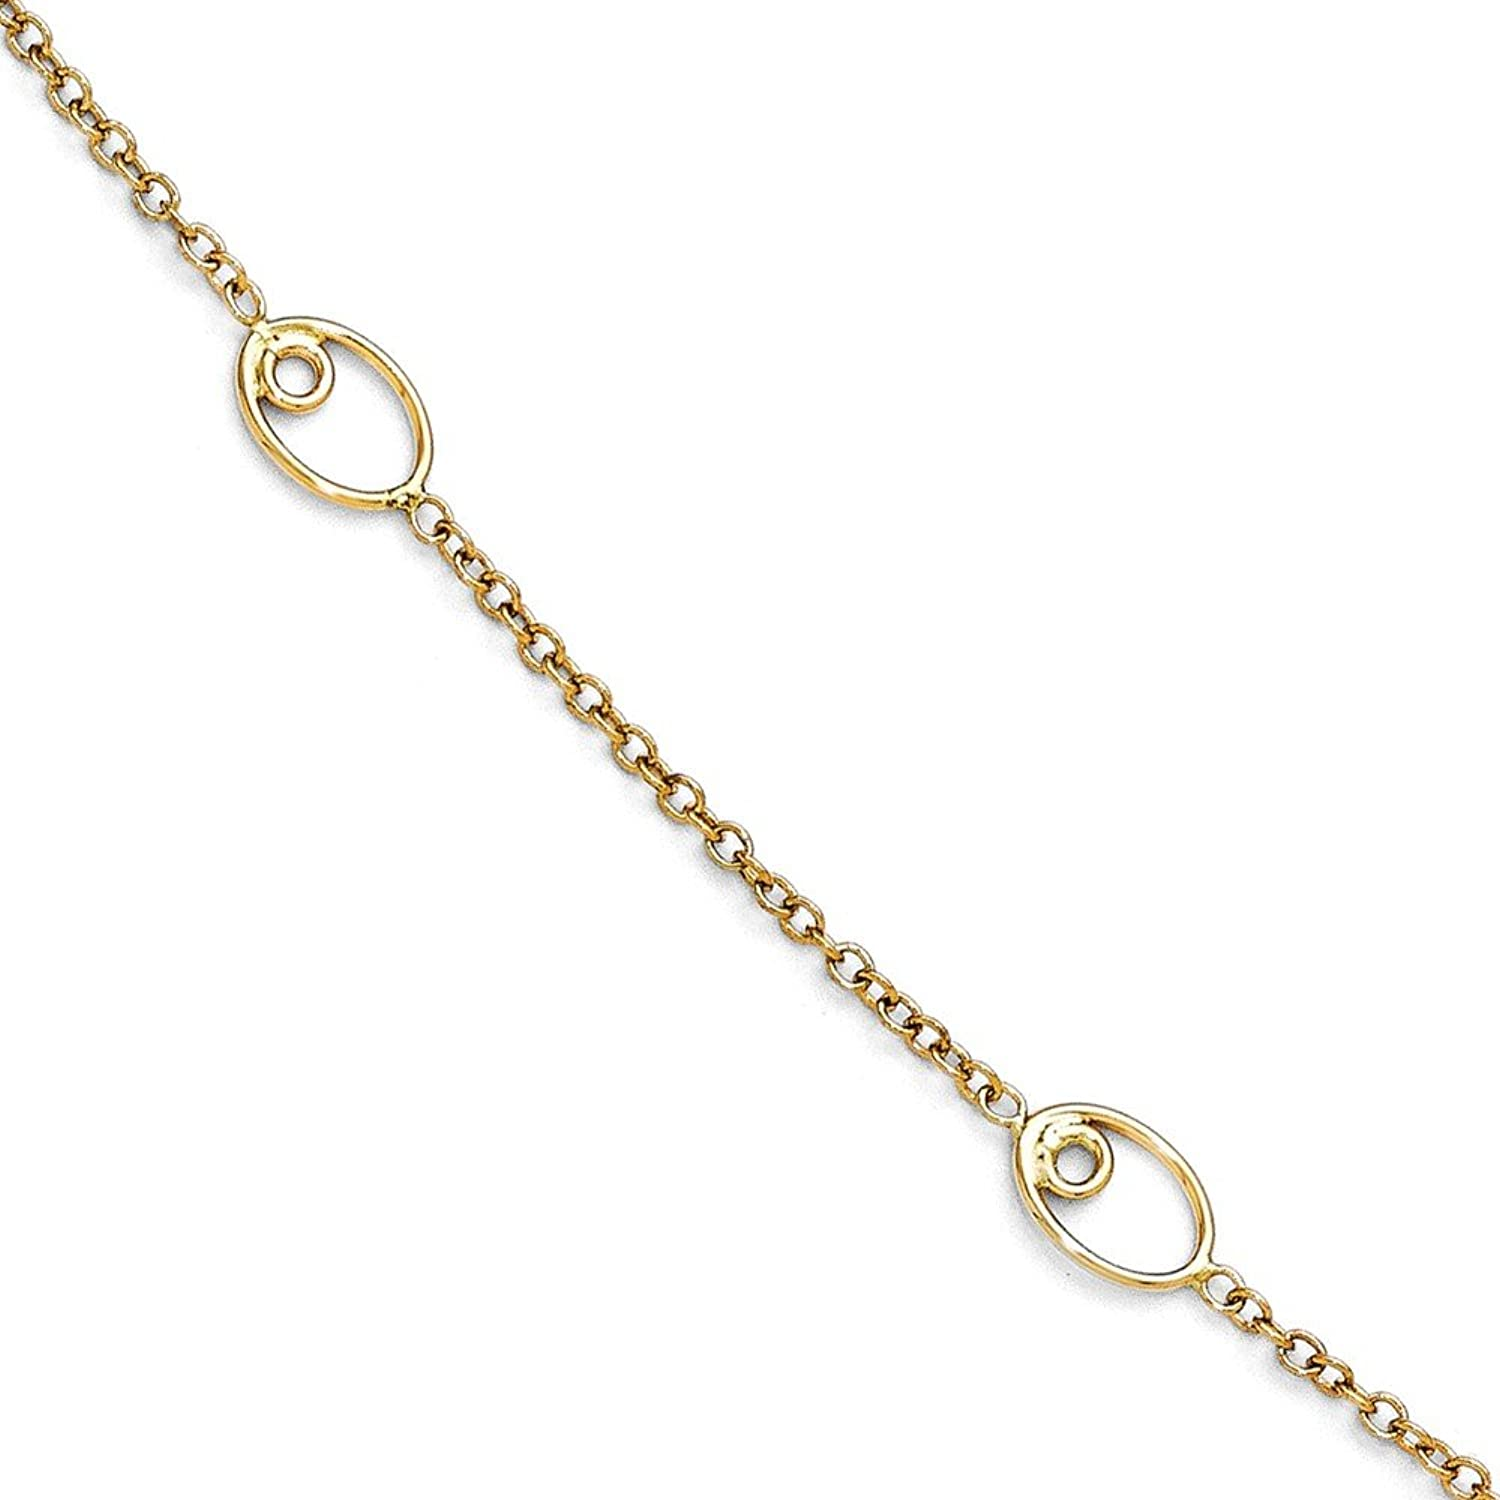 14k Yellow Gold Polished Anklet With 1inch Ext - 10 Inch